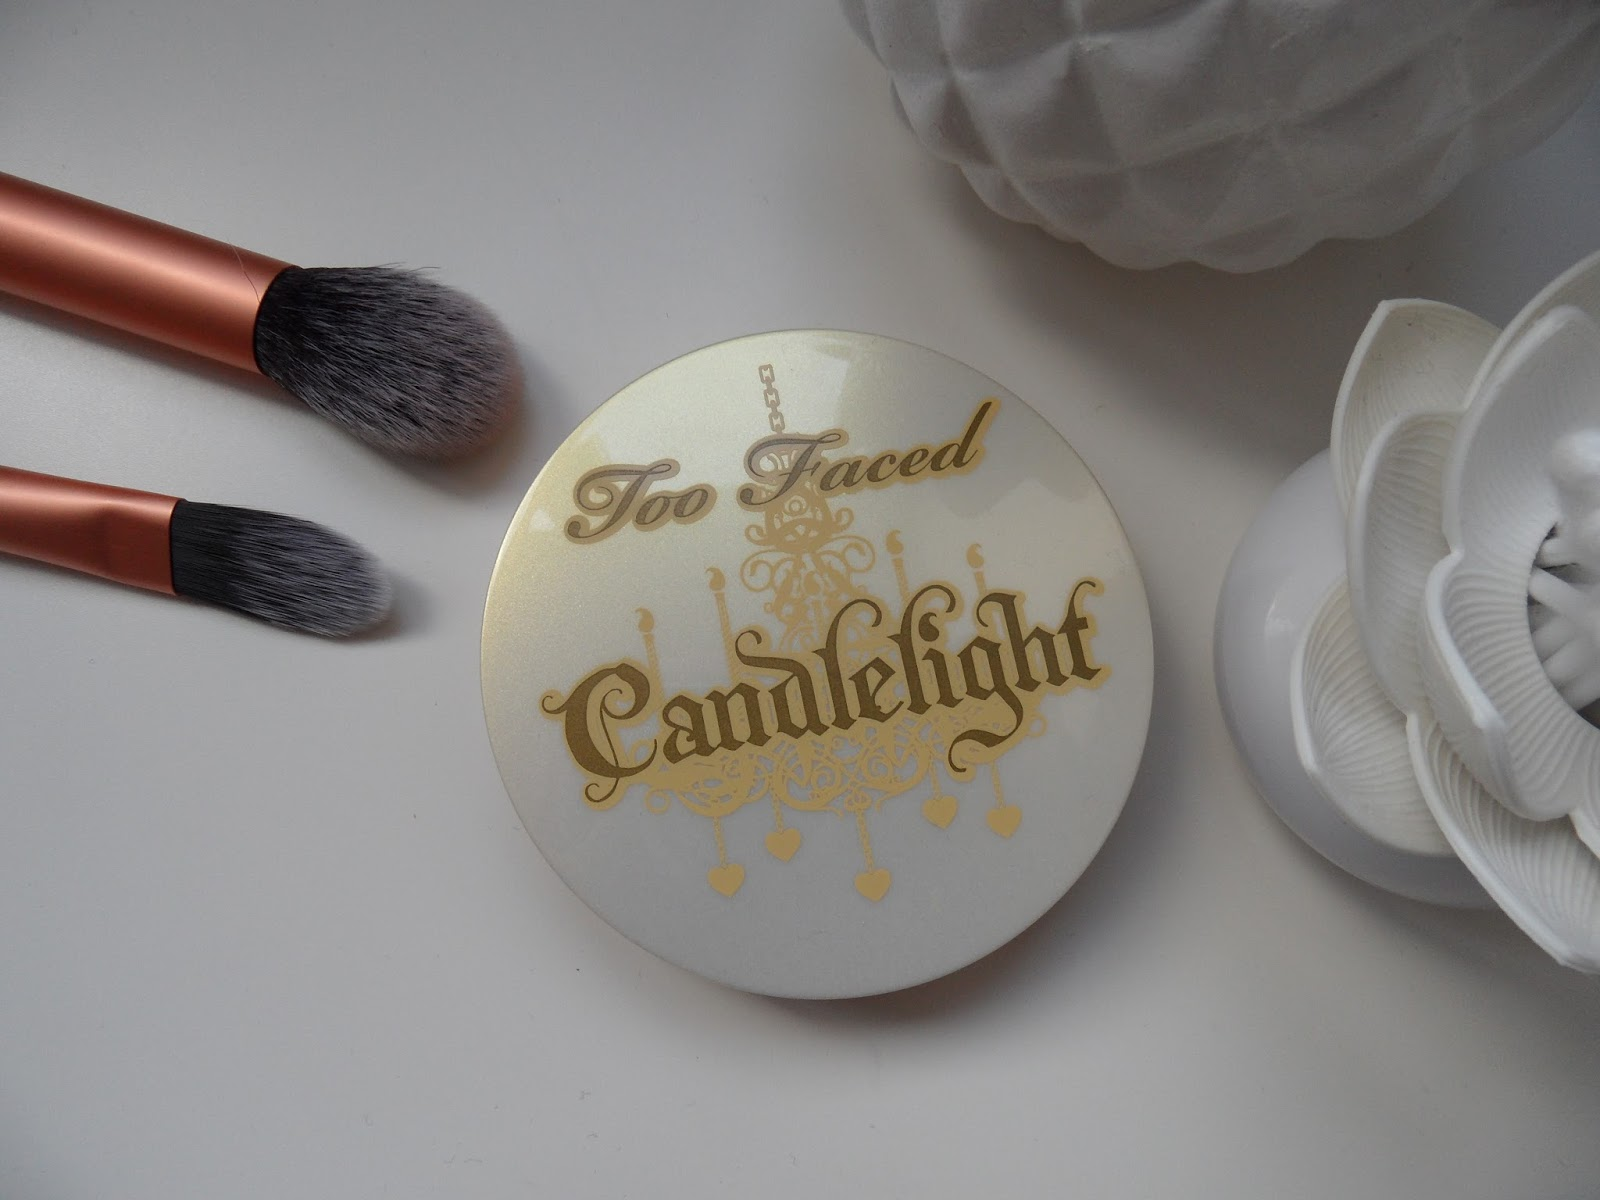 Too Faced Candlelight Highlighter Eyelinerflicks